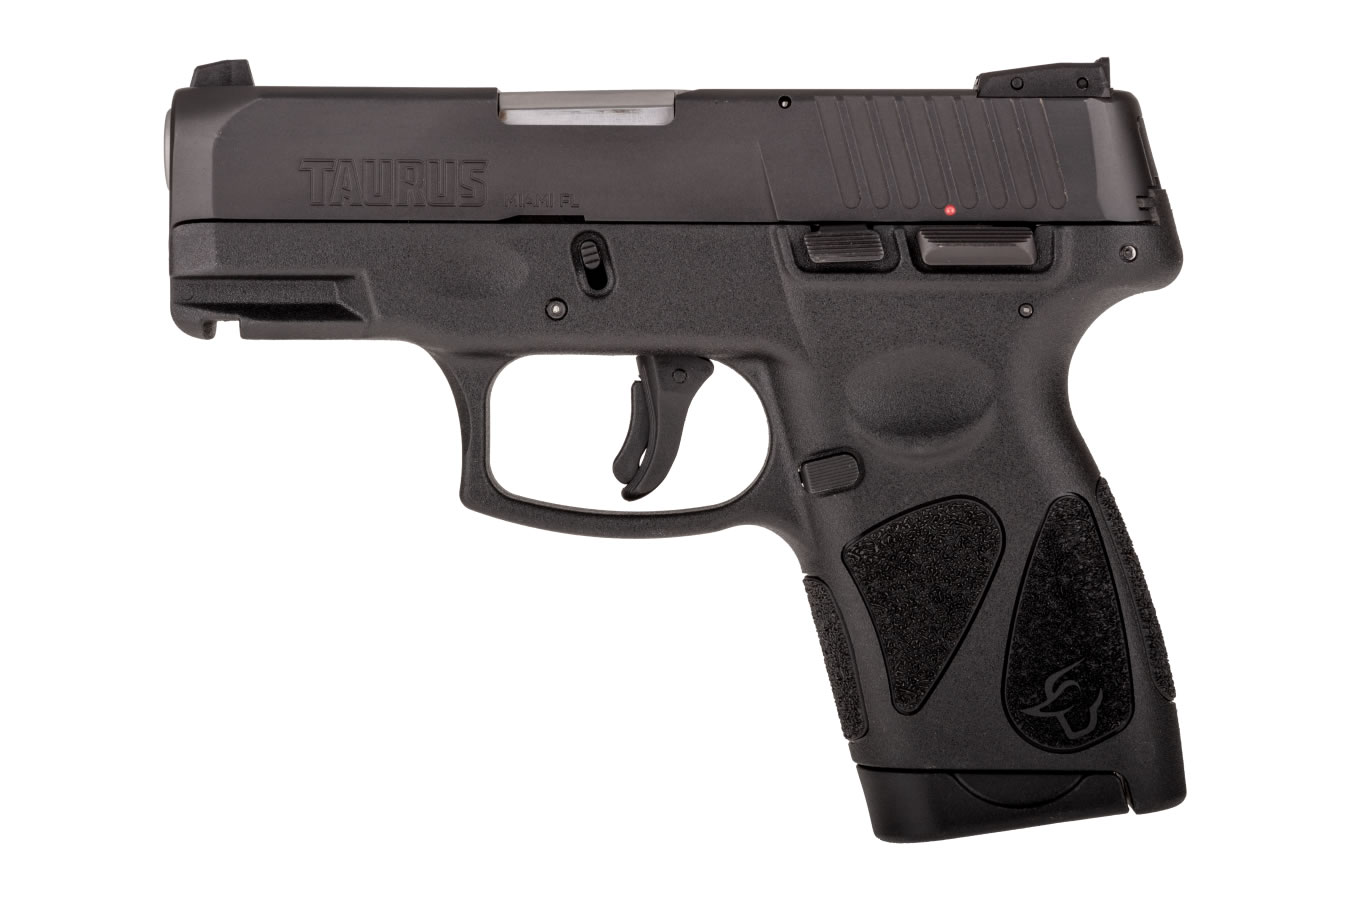 G2S 40SW SINGLE-STACK PISTOL